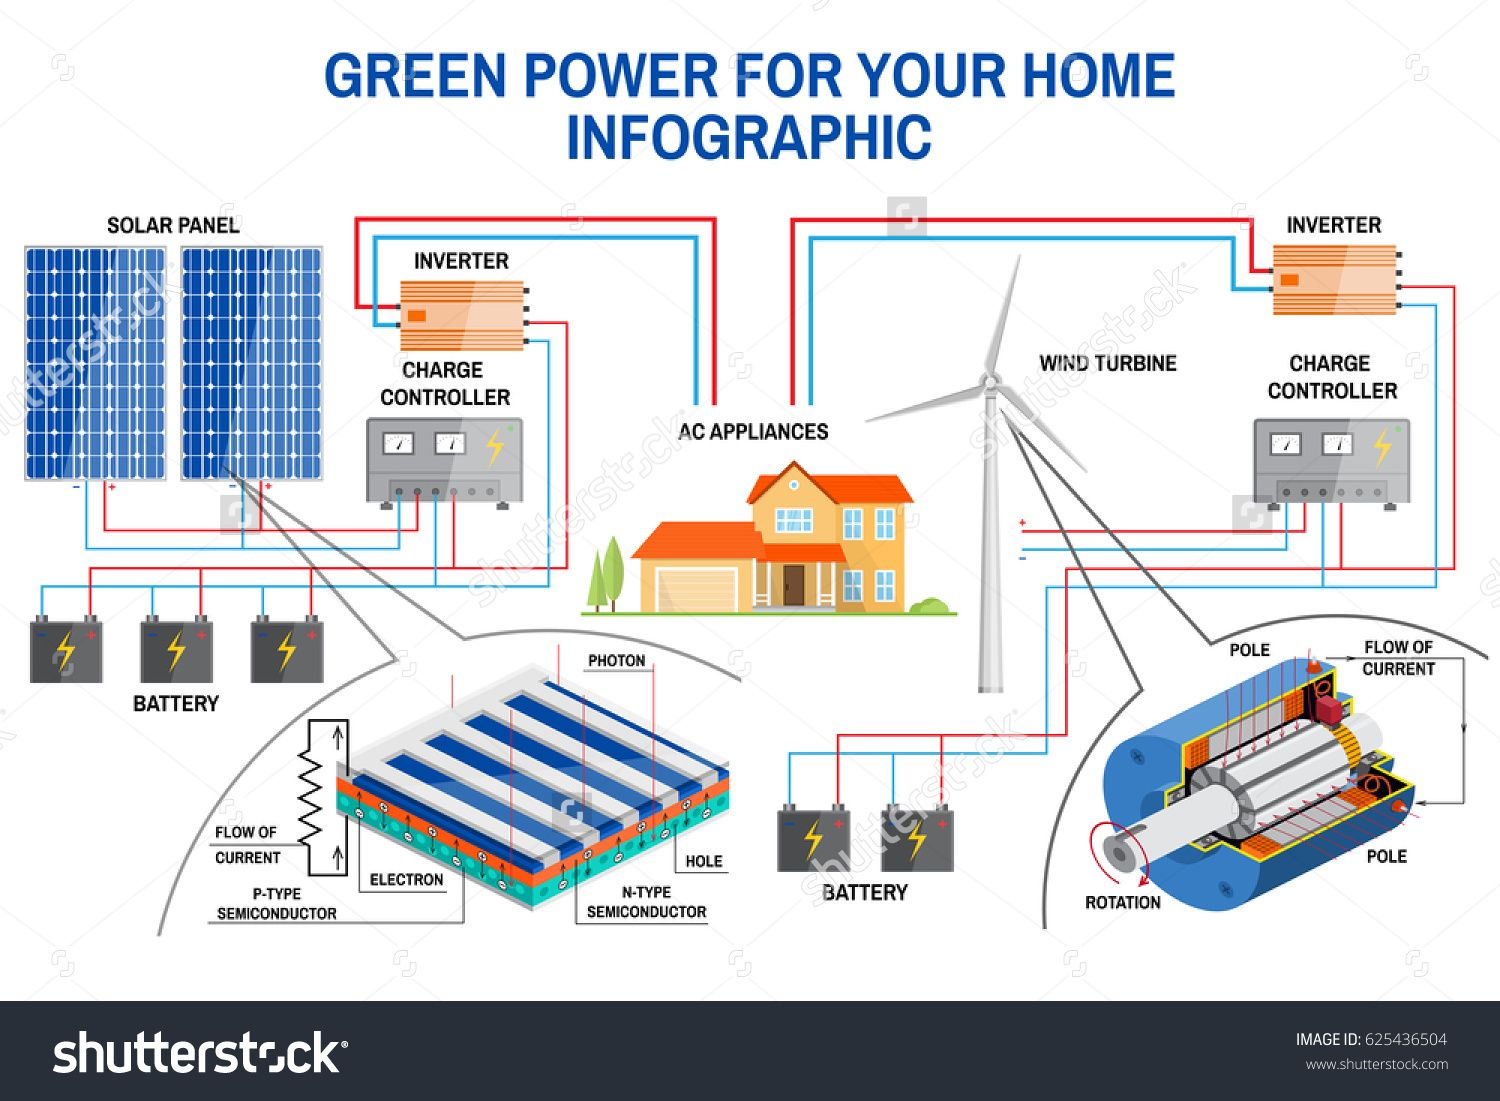 Solar Panel And Wind Power Generation System For Home Infographic Simplified Diagram Of An Off Grid System Wind Turbin Solar Solar Panels Solar Water Heating